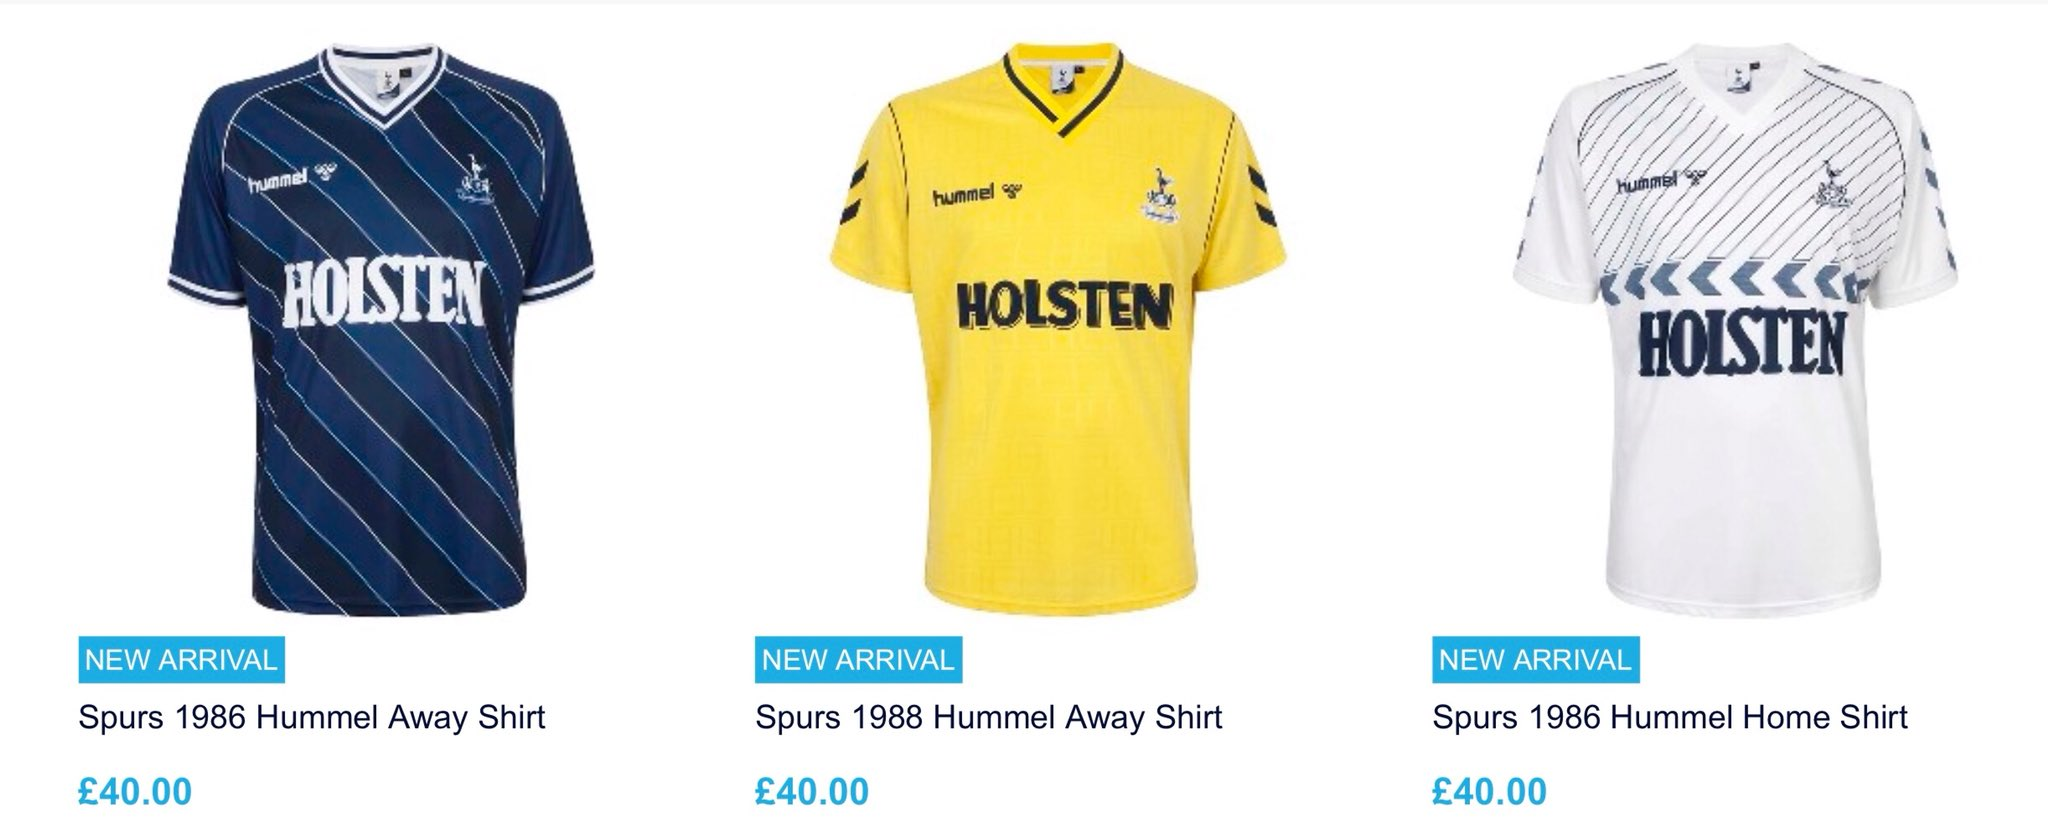 66ecccb196a The Spurs Shirt on Twitter